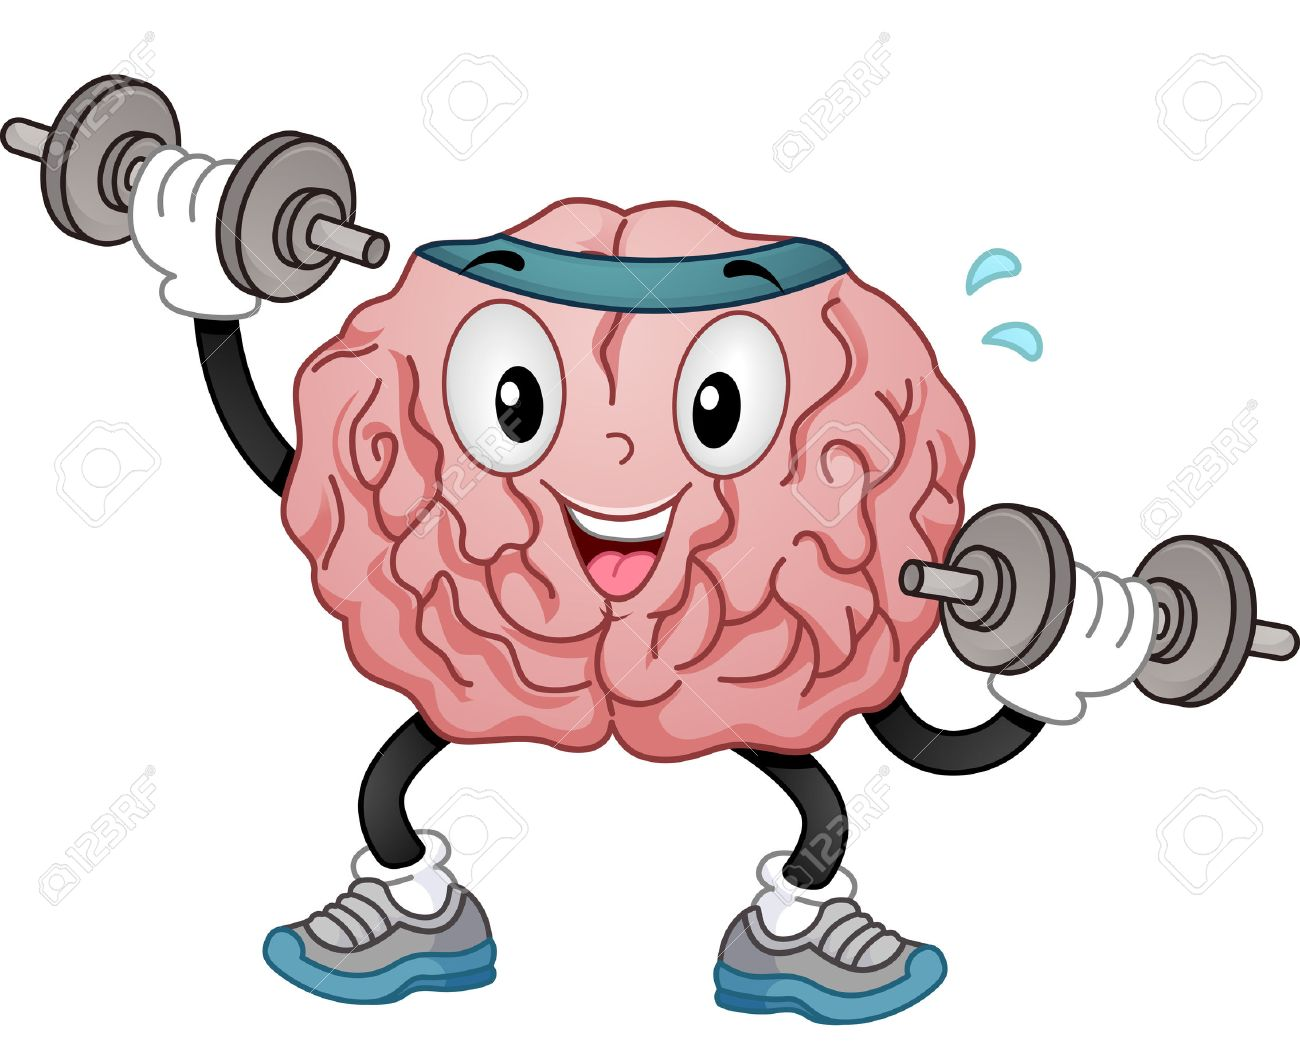 Illustration of a Brain Mascot in Sporty Headband and Training Shoes Alternately Lifting Dumbbells - 64592020